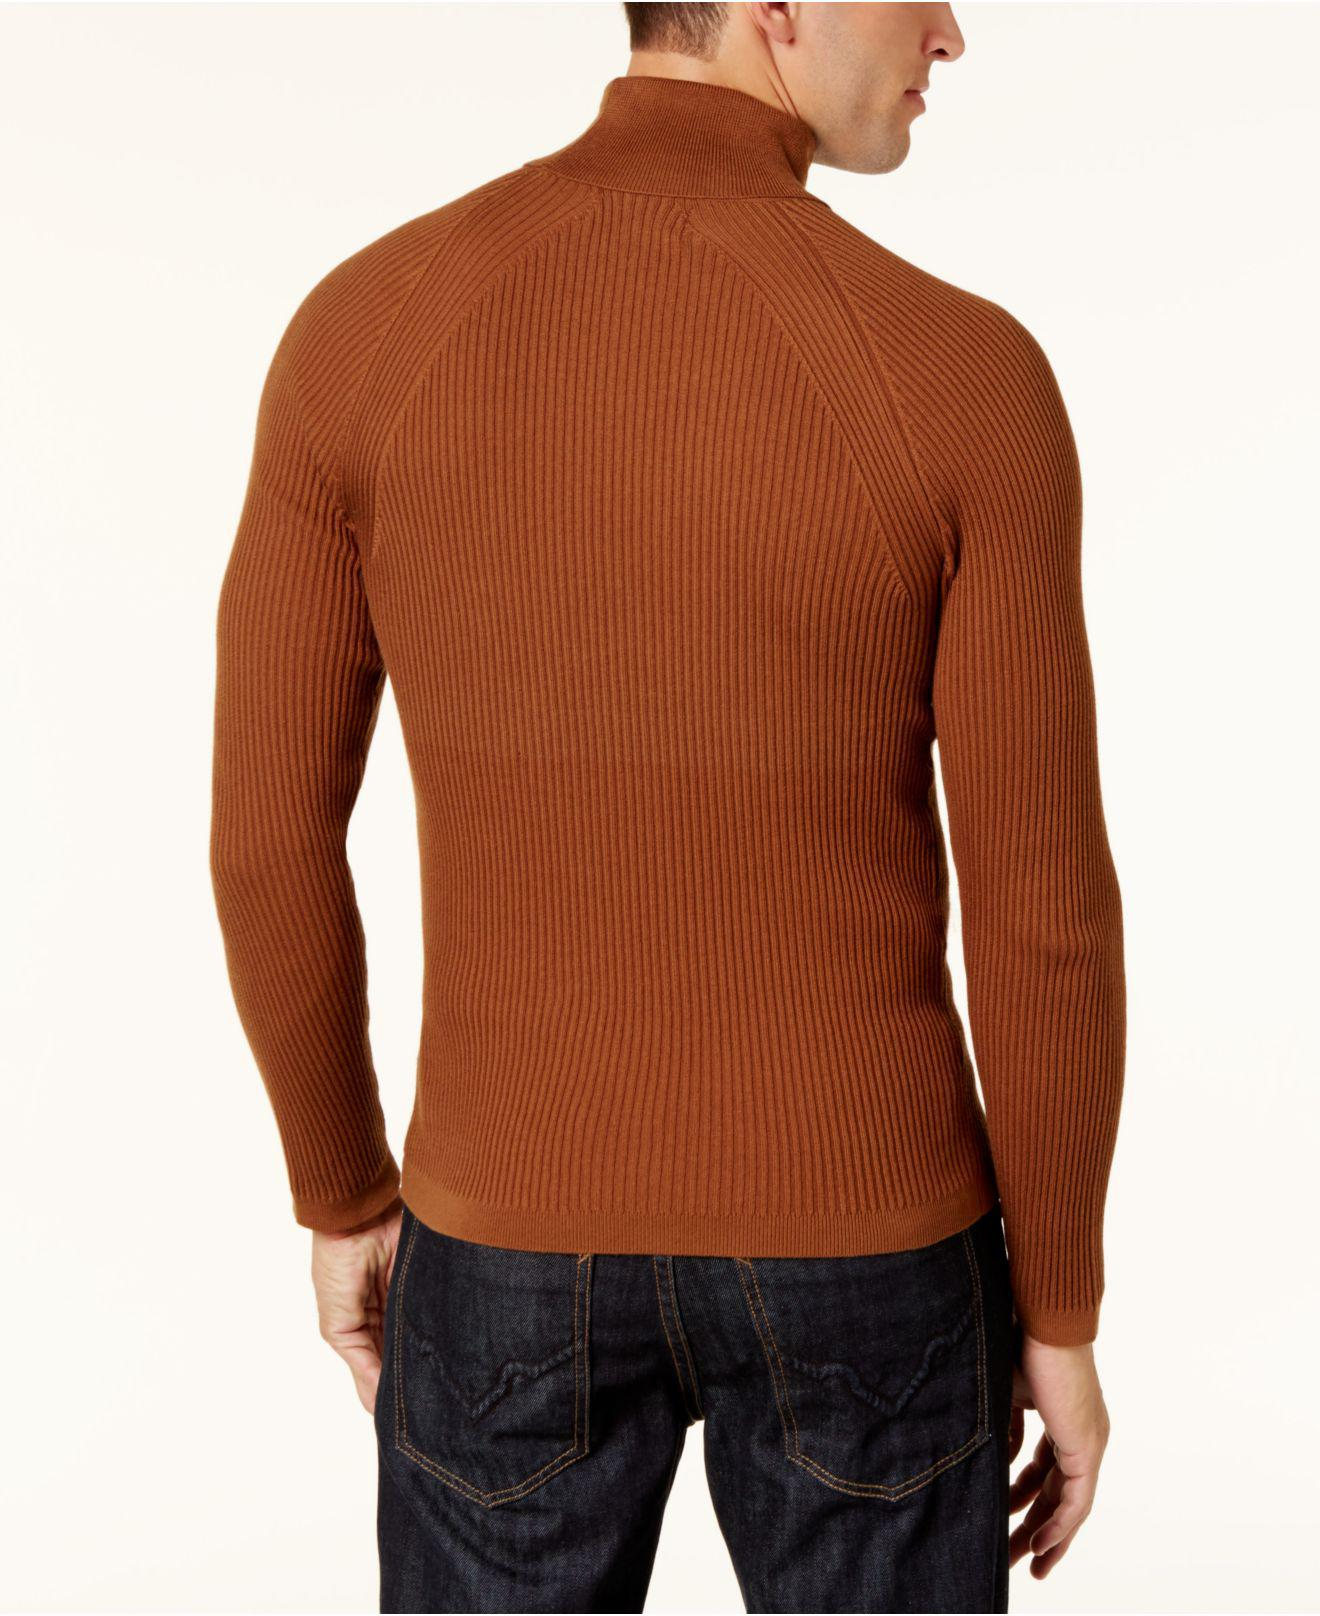 Inc international concepts Men's Ribbed Turtleneck Sweater in ...